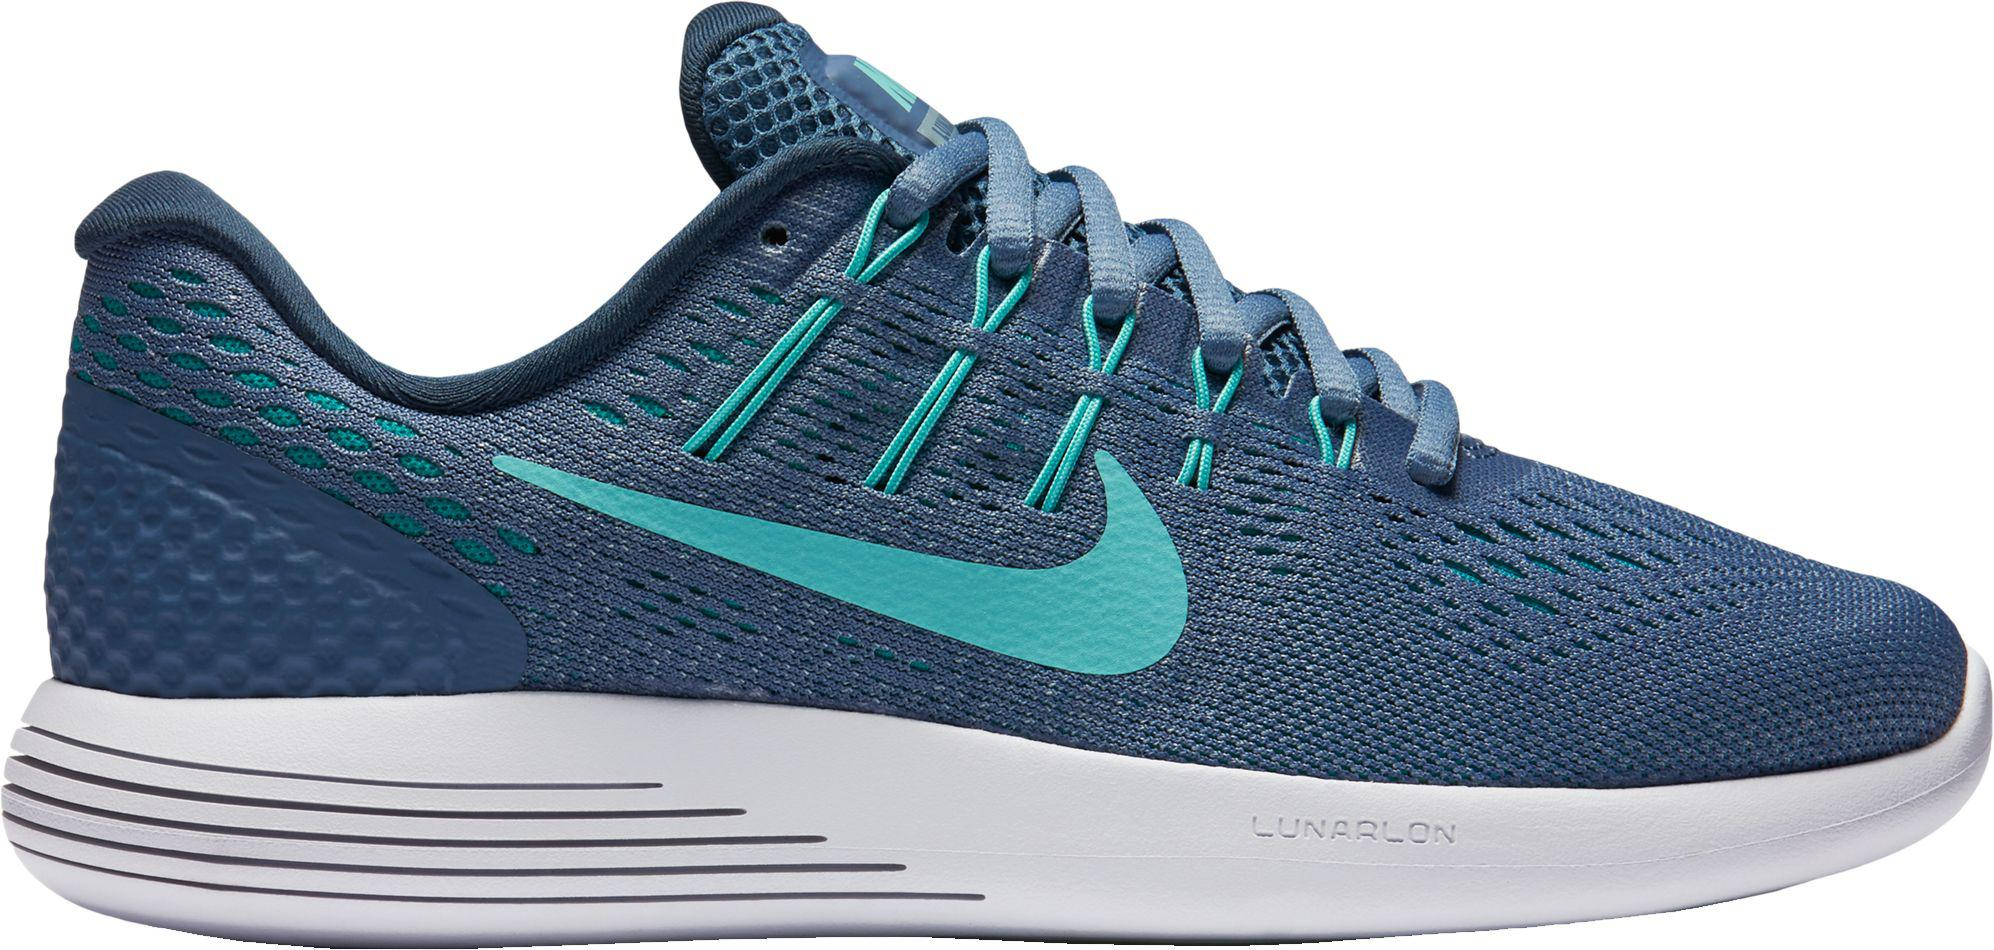 Lyst - Nike Lunarglide 8 Running Shoes in Blue 00f9d0a1a4